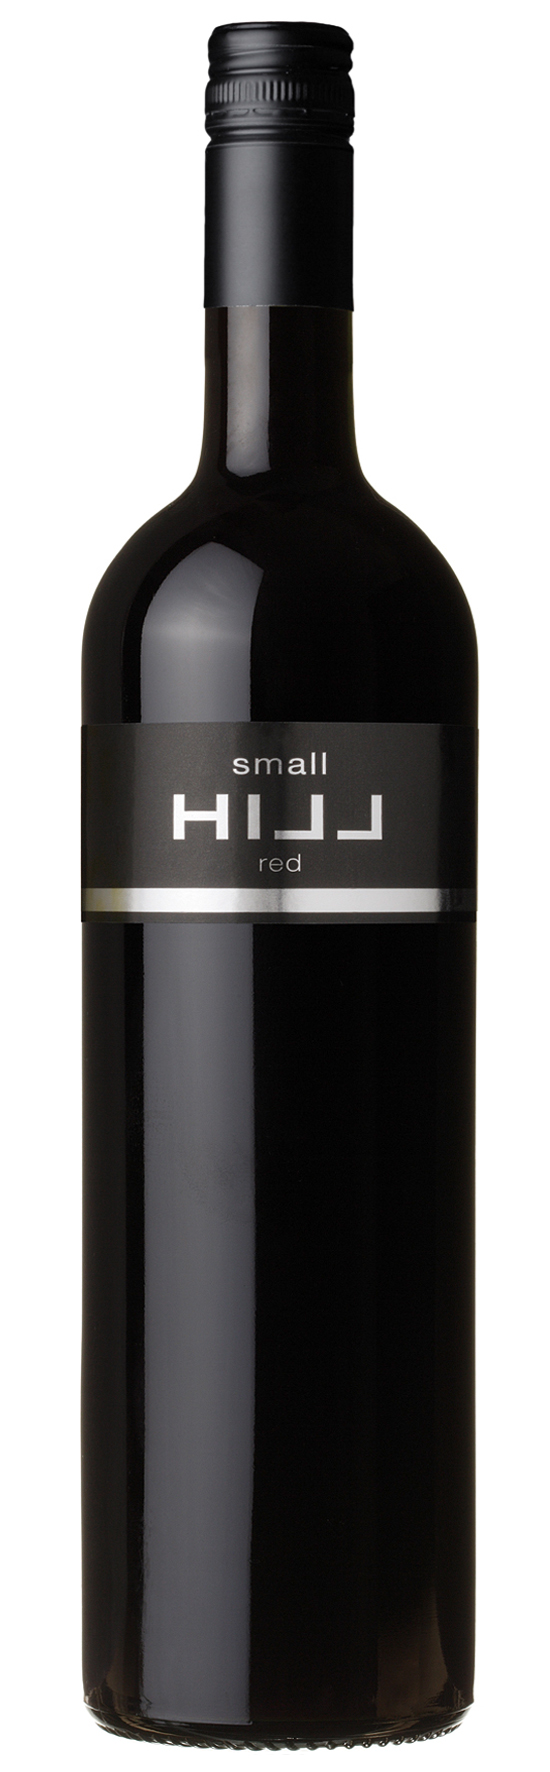 SMALL HILL RED Leo Hillinger 2014